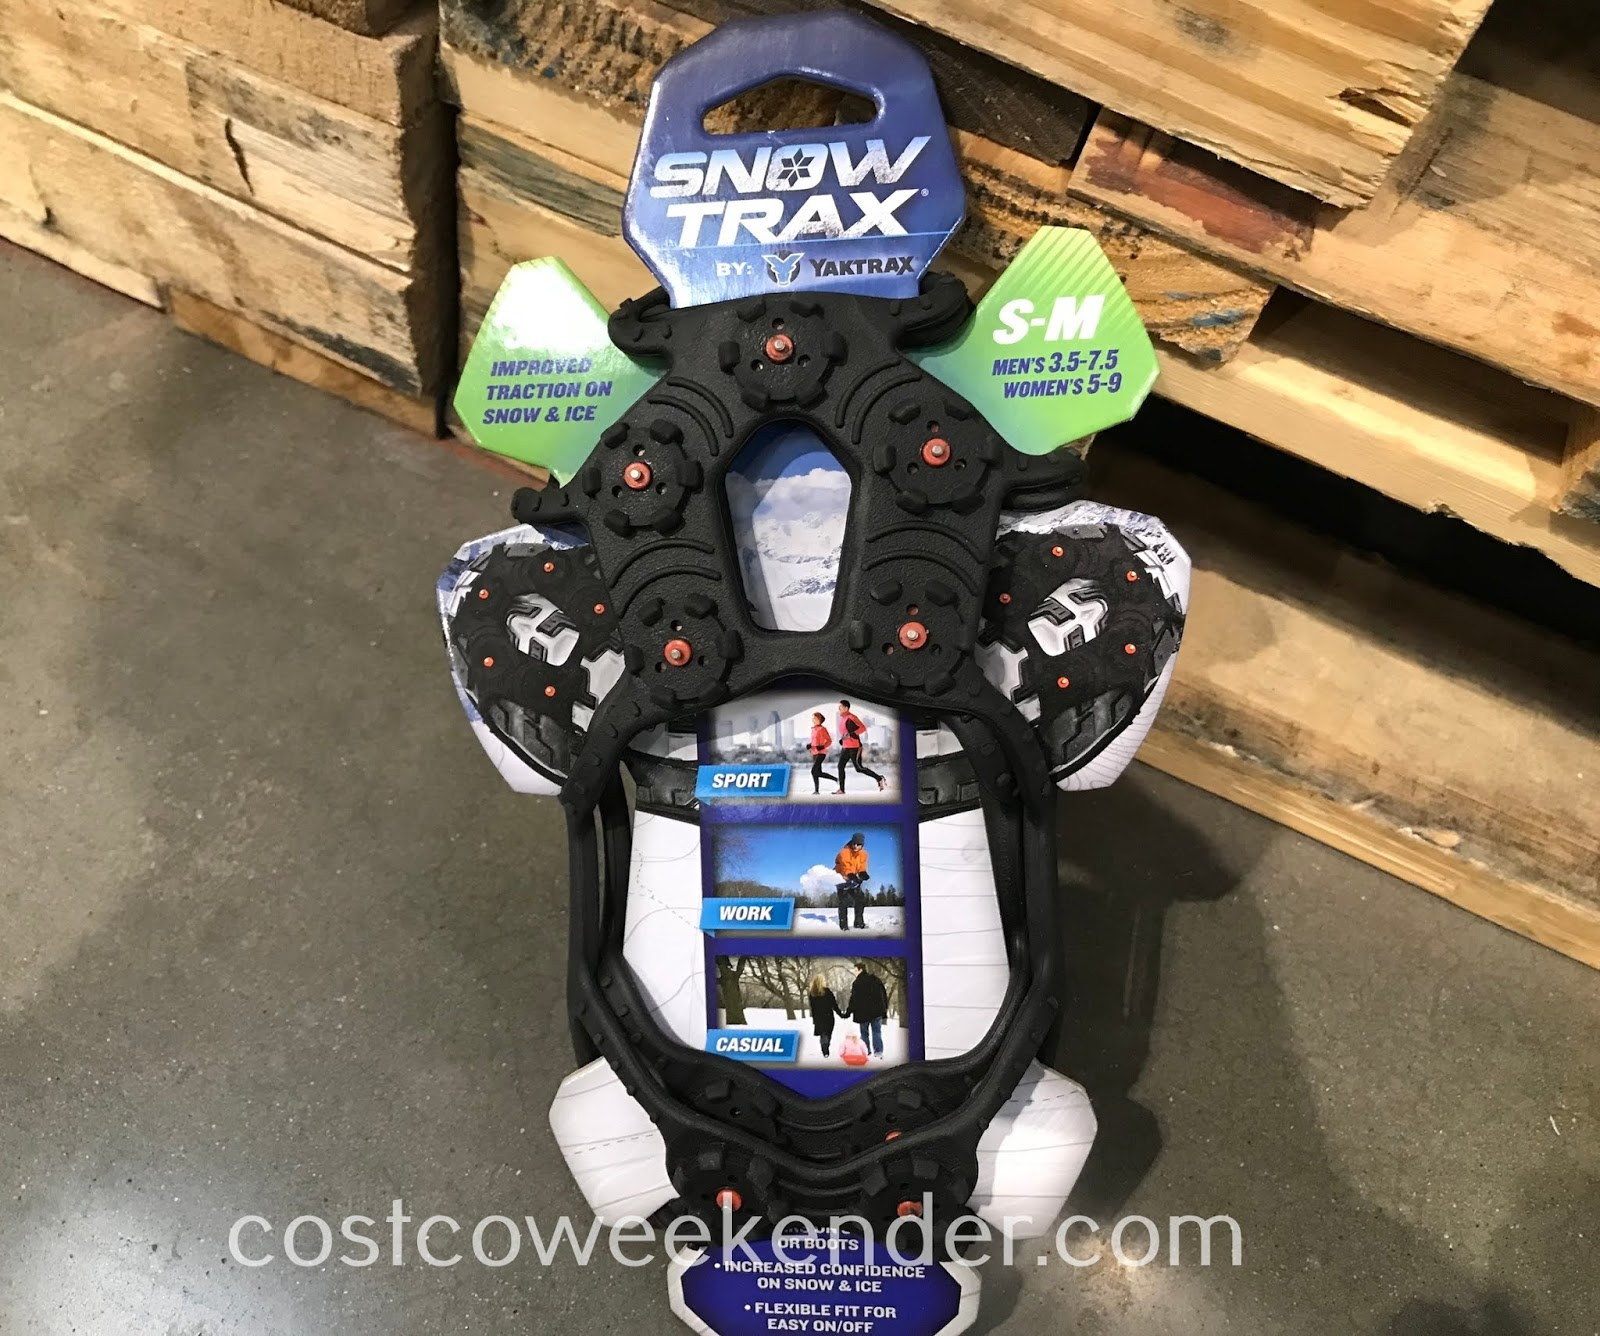 Avoid slipping and falling in snowy conditions with Yaktrax SnowTrax